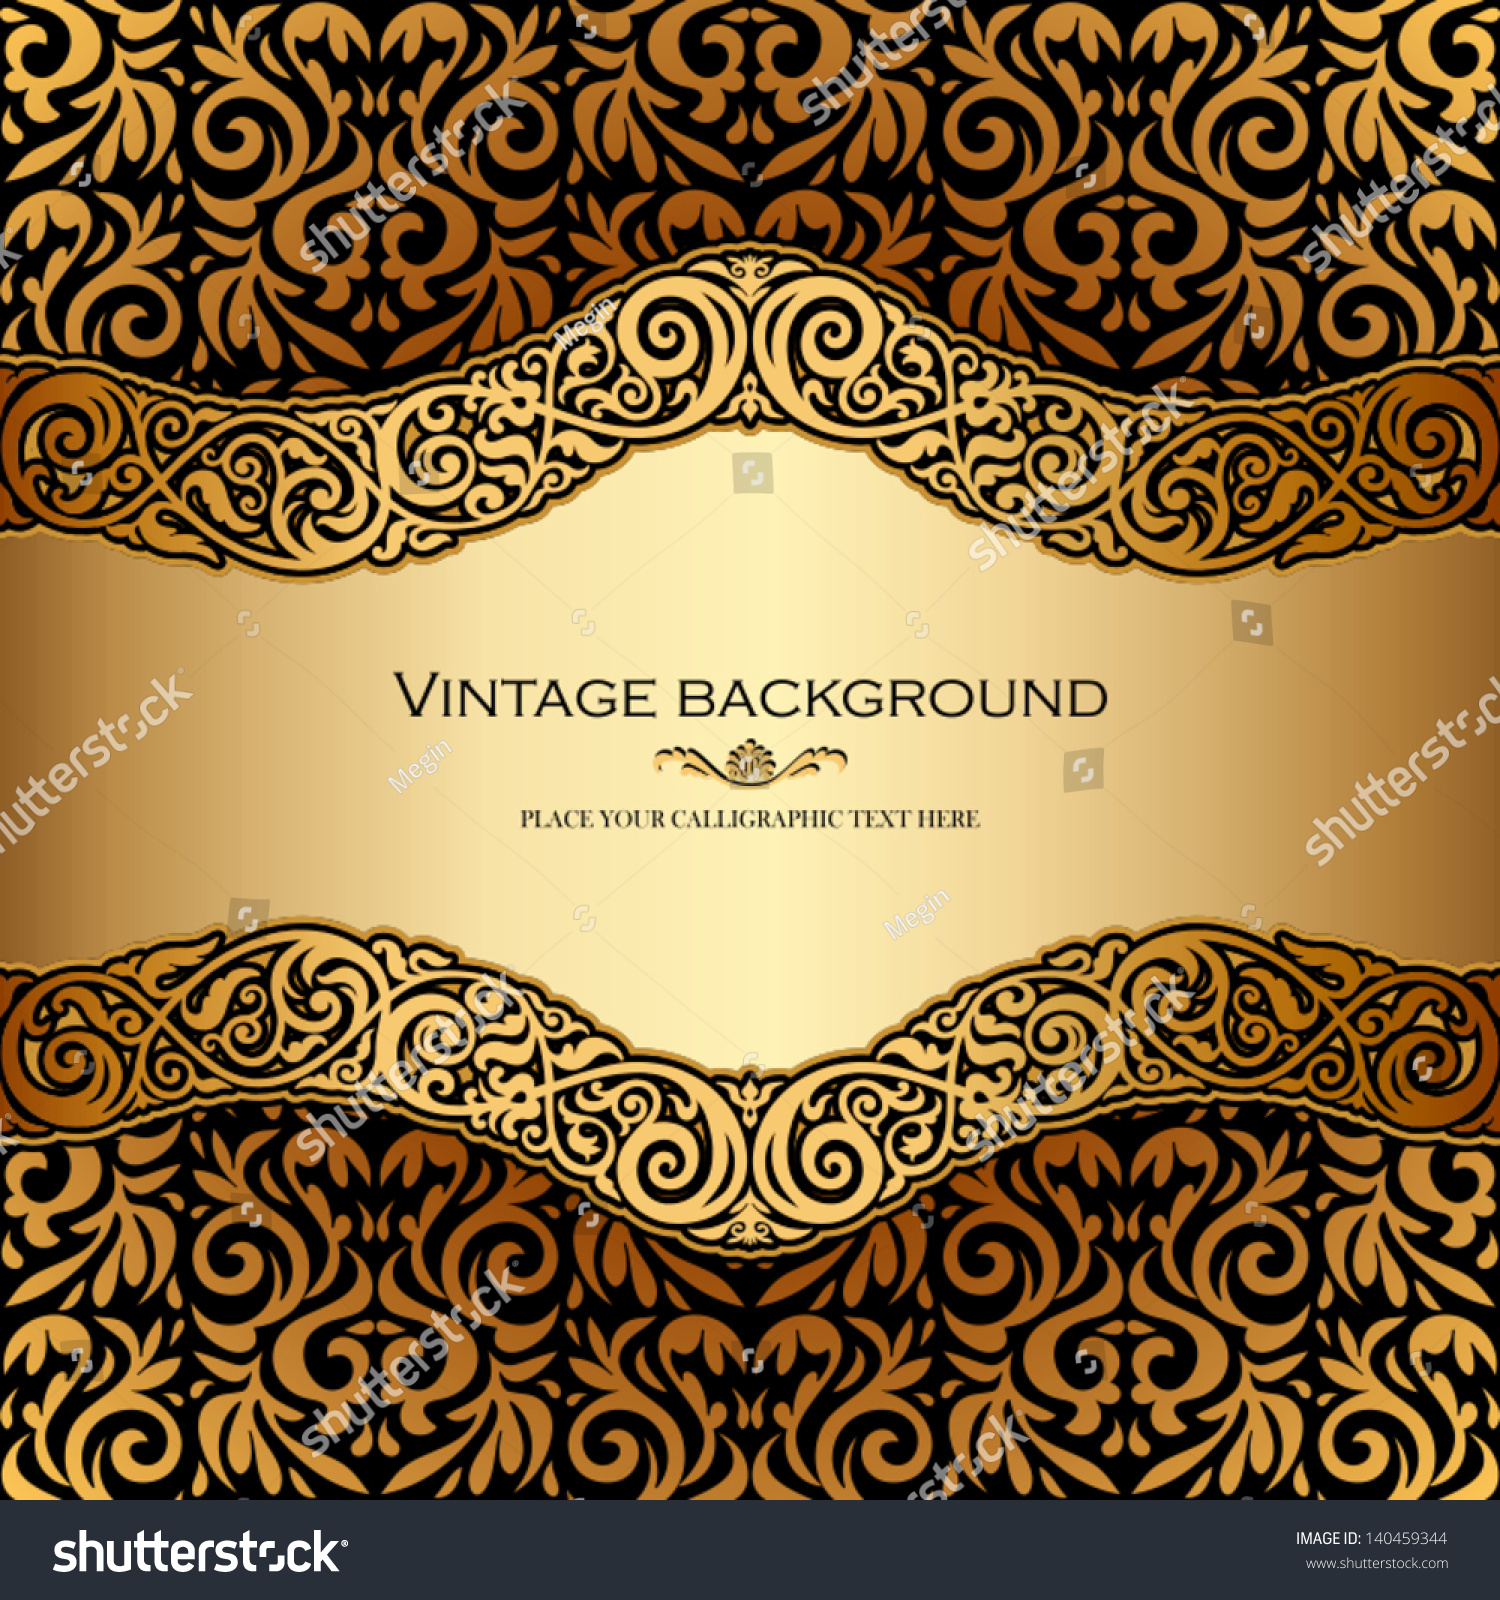 Vintage background ornate baroque pattern vector illustration stock -  Vectors Illustrations Footage Music Vintage Background Antique Victorian Gold Ornament Baroque Frame Beautiful Old Paper